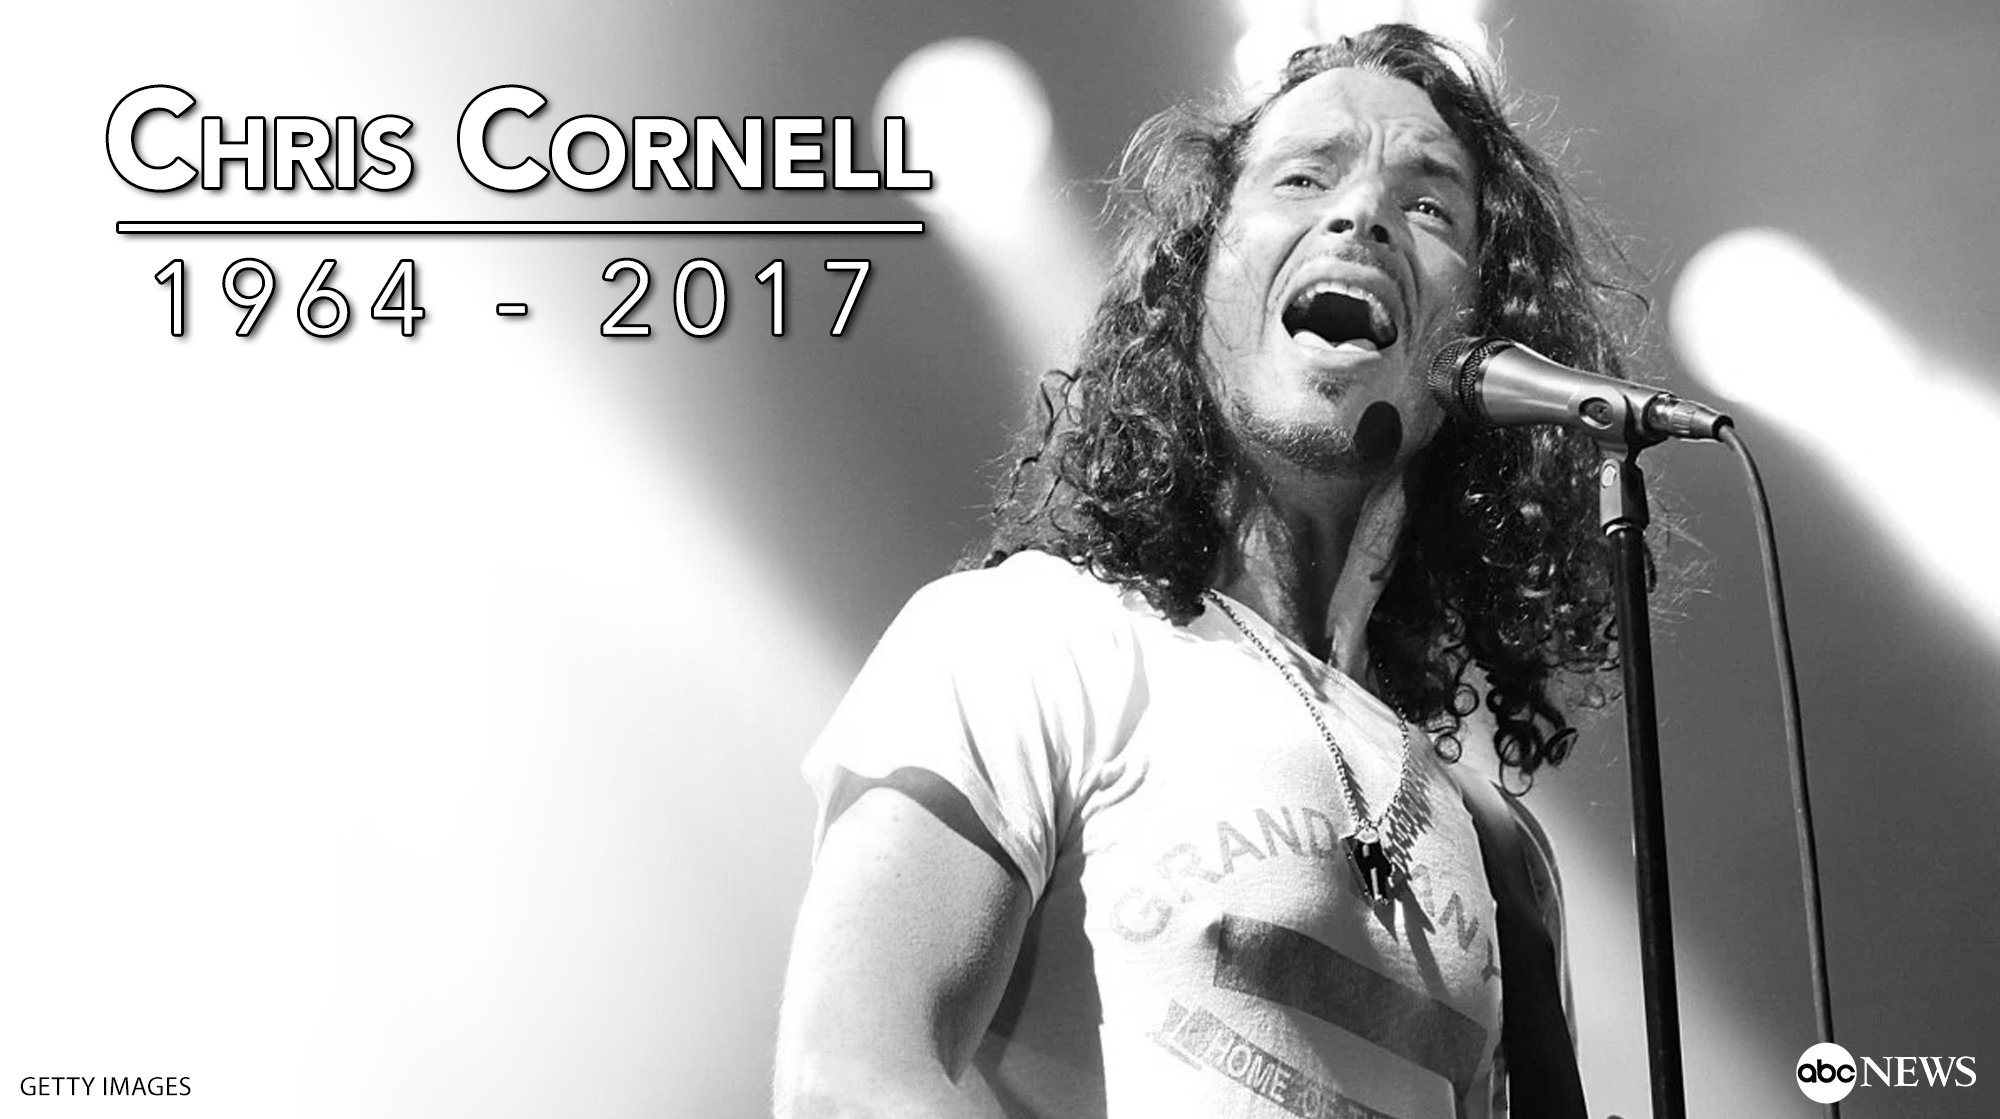 Rest in peace, Chris Cornell... https://t.co/FZyjBYY7EI